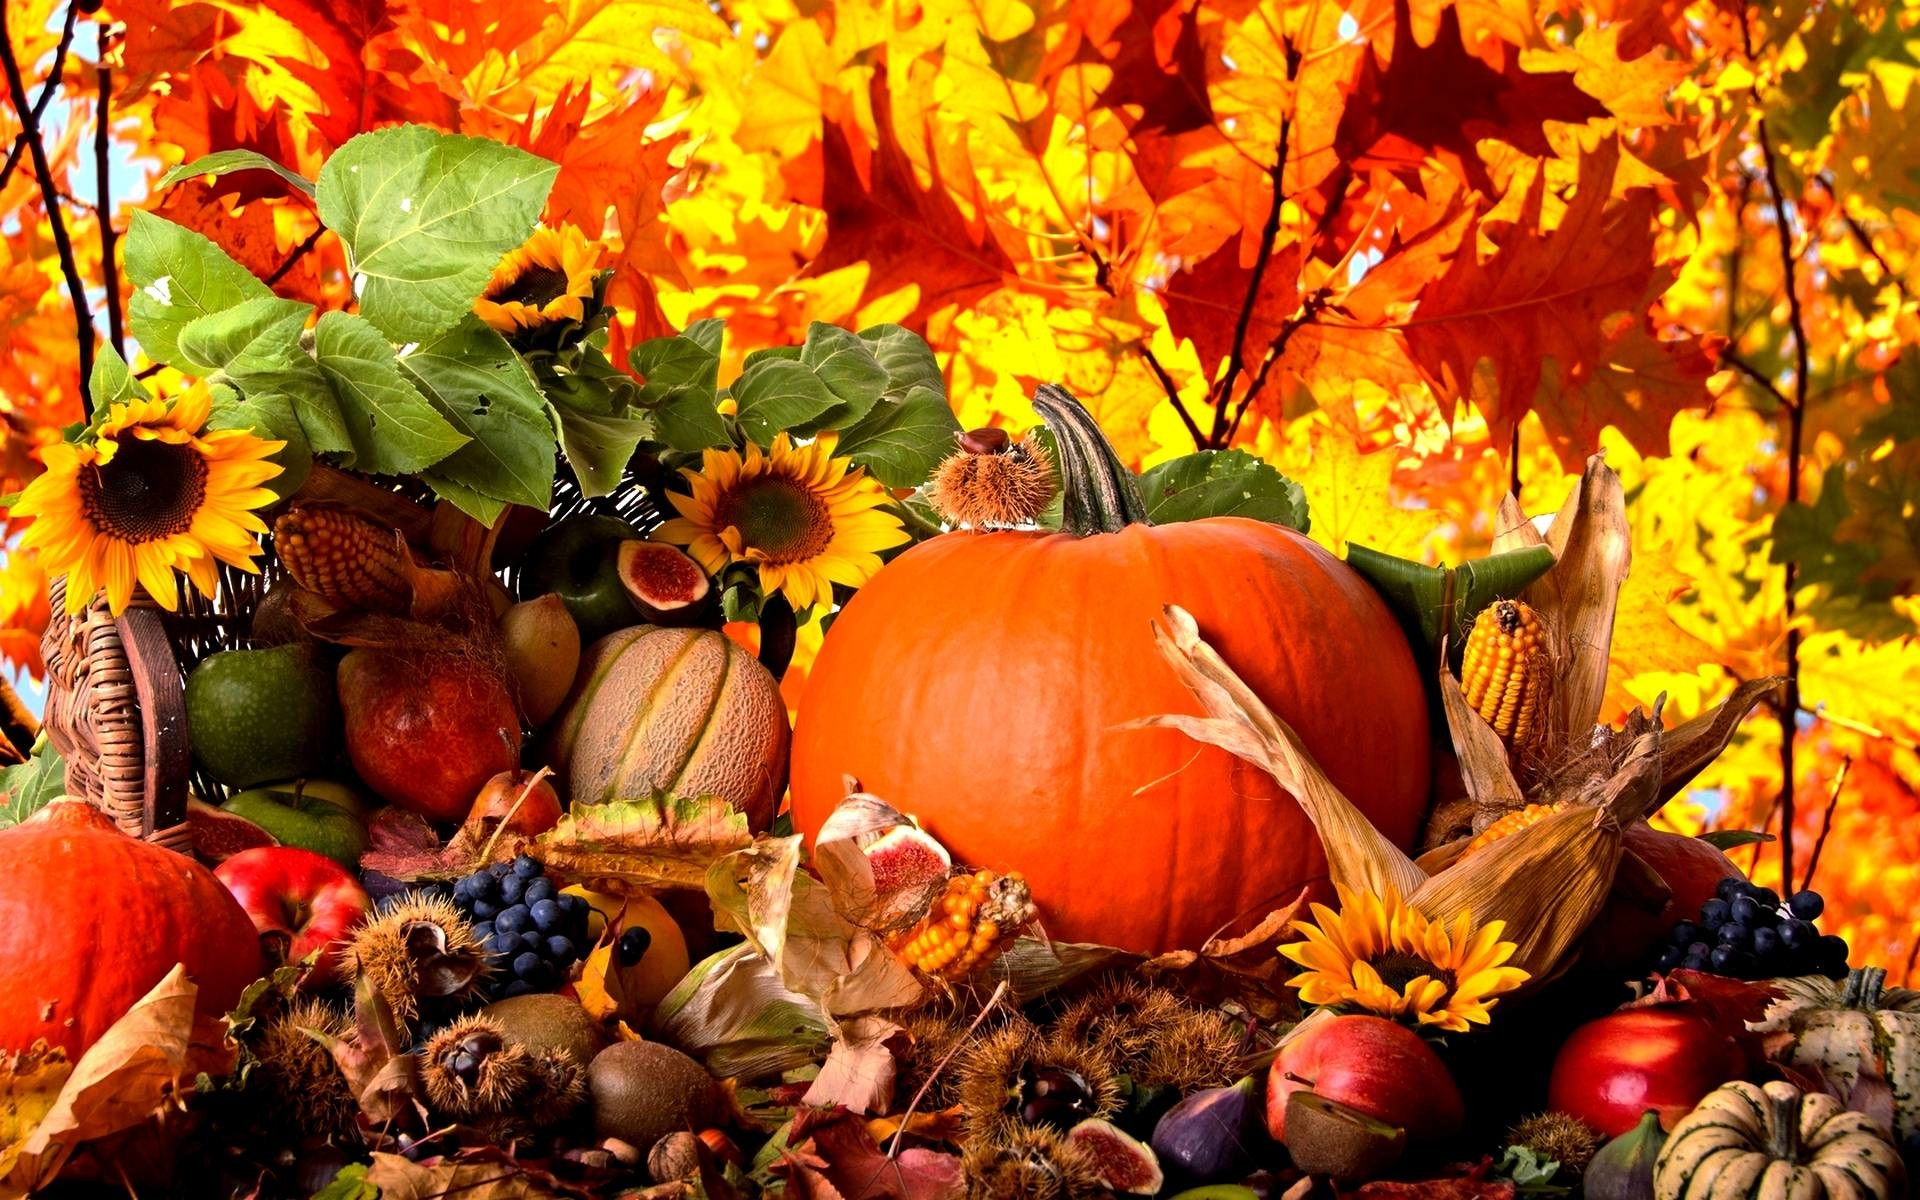 Fall Scene Wallpaper With Pumpkins 52 Images